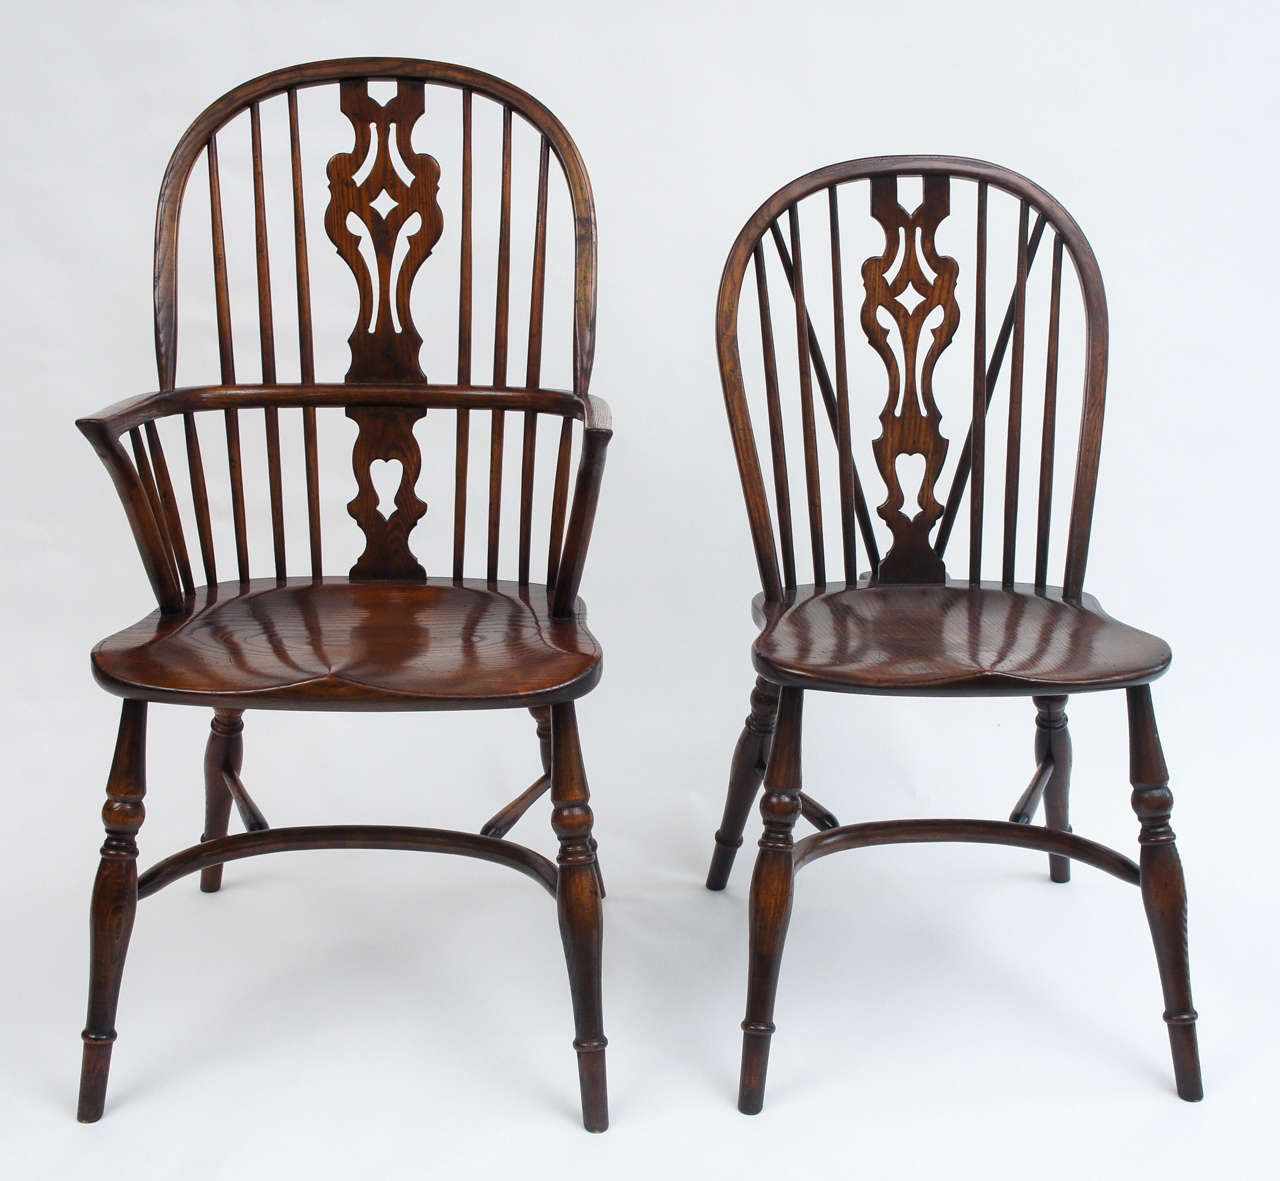 oak windsor chairs high end rocking set of ten english early 20th century upstairs two armchairs